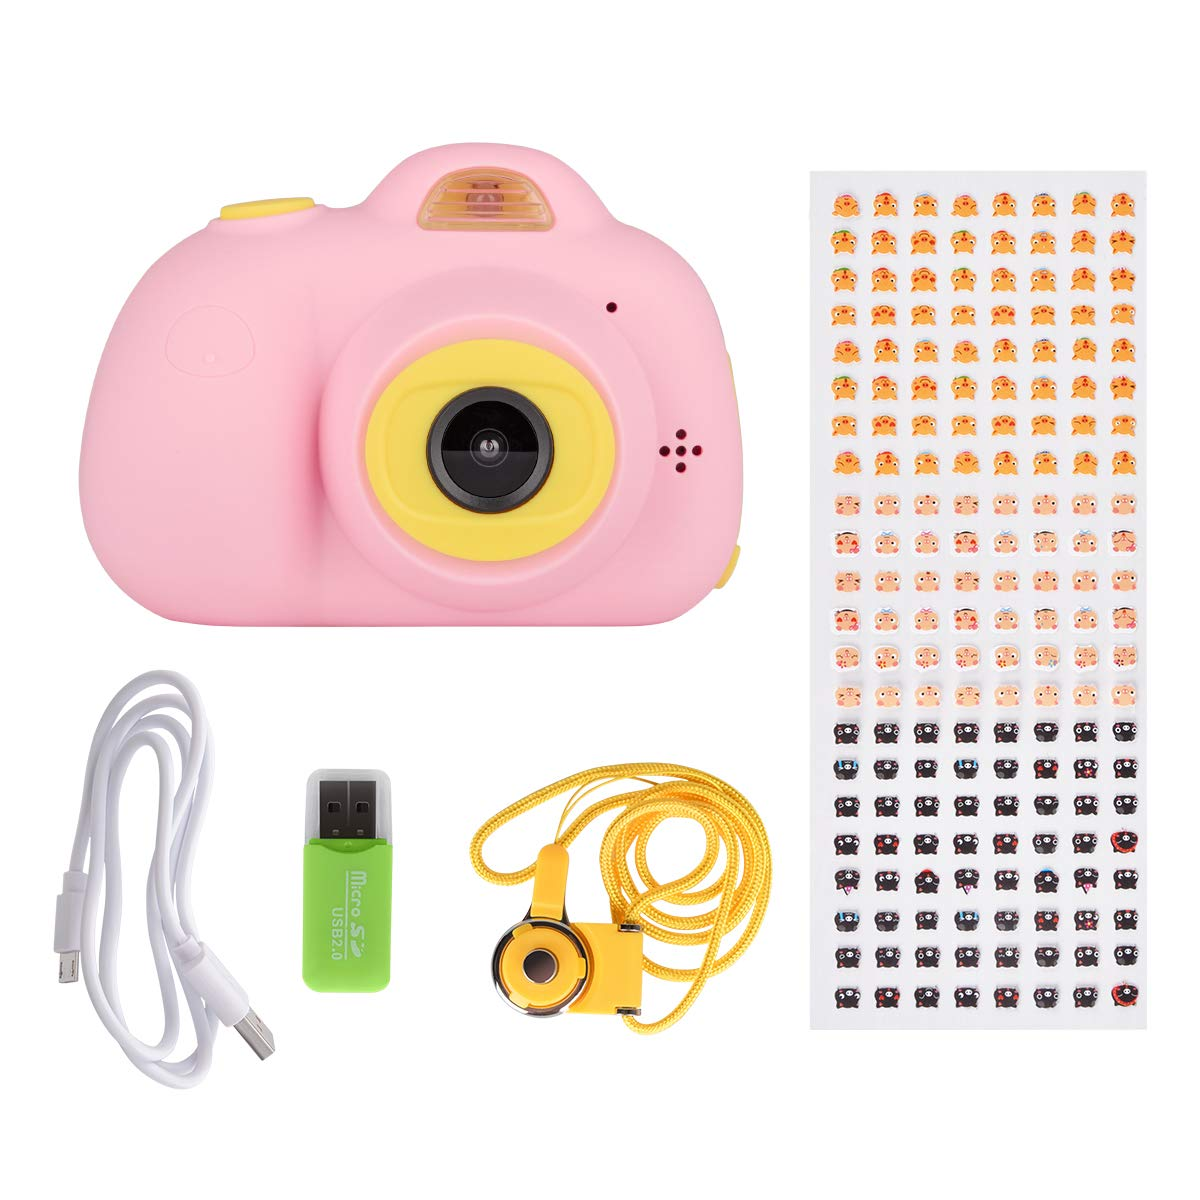 Tyhbelle Kids Camera Video Recorder Anti-Dropping Dual Camera Kids Toy with 16G TF/Micro SD Card (Pink) by Tyhbelle (Image #7)